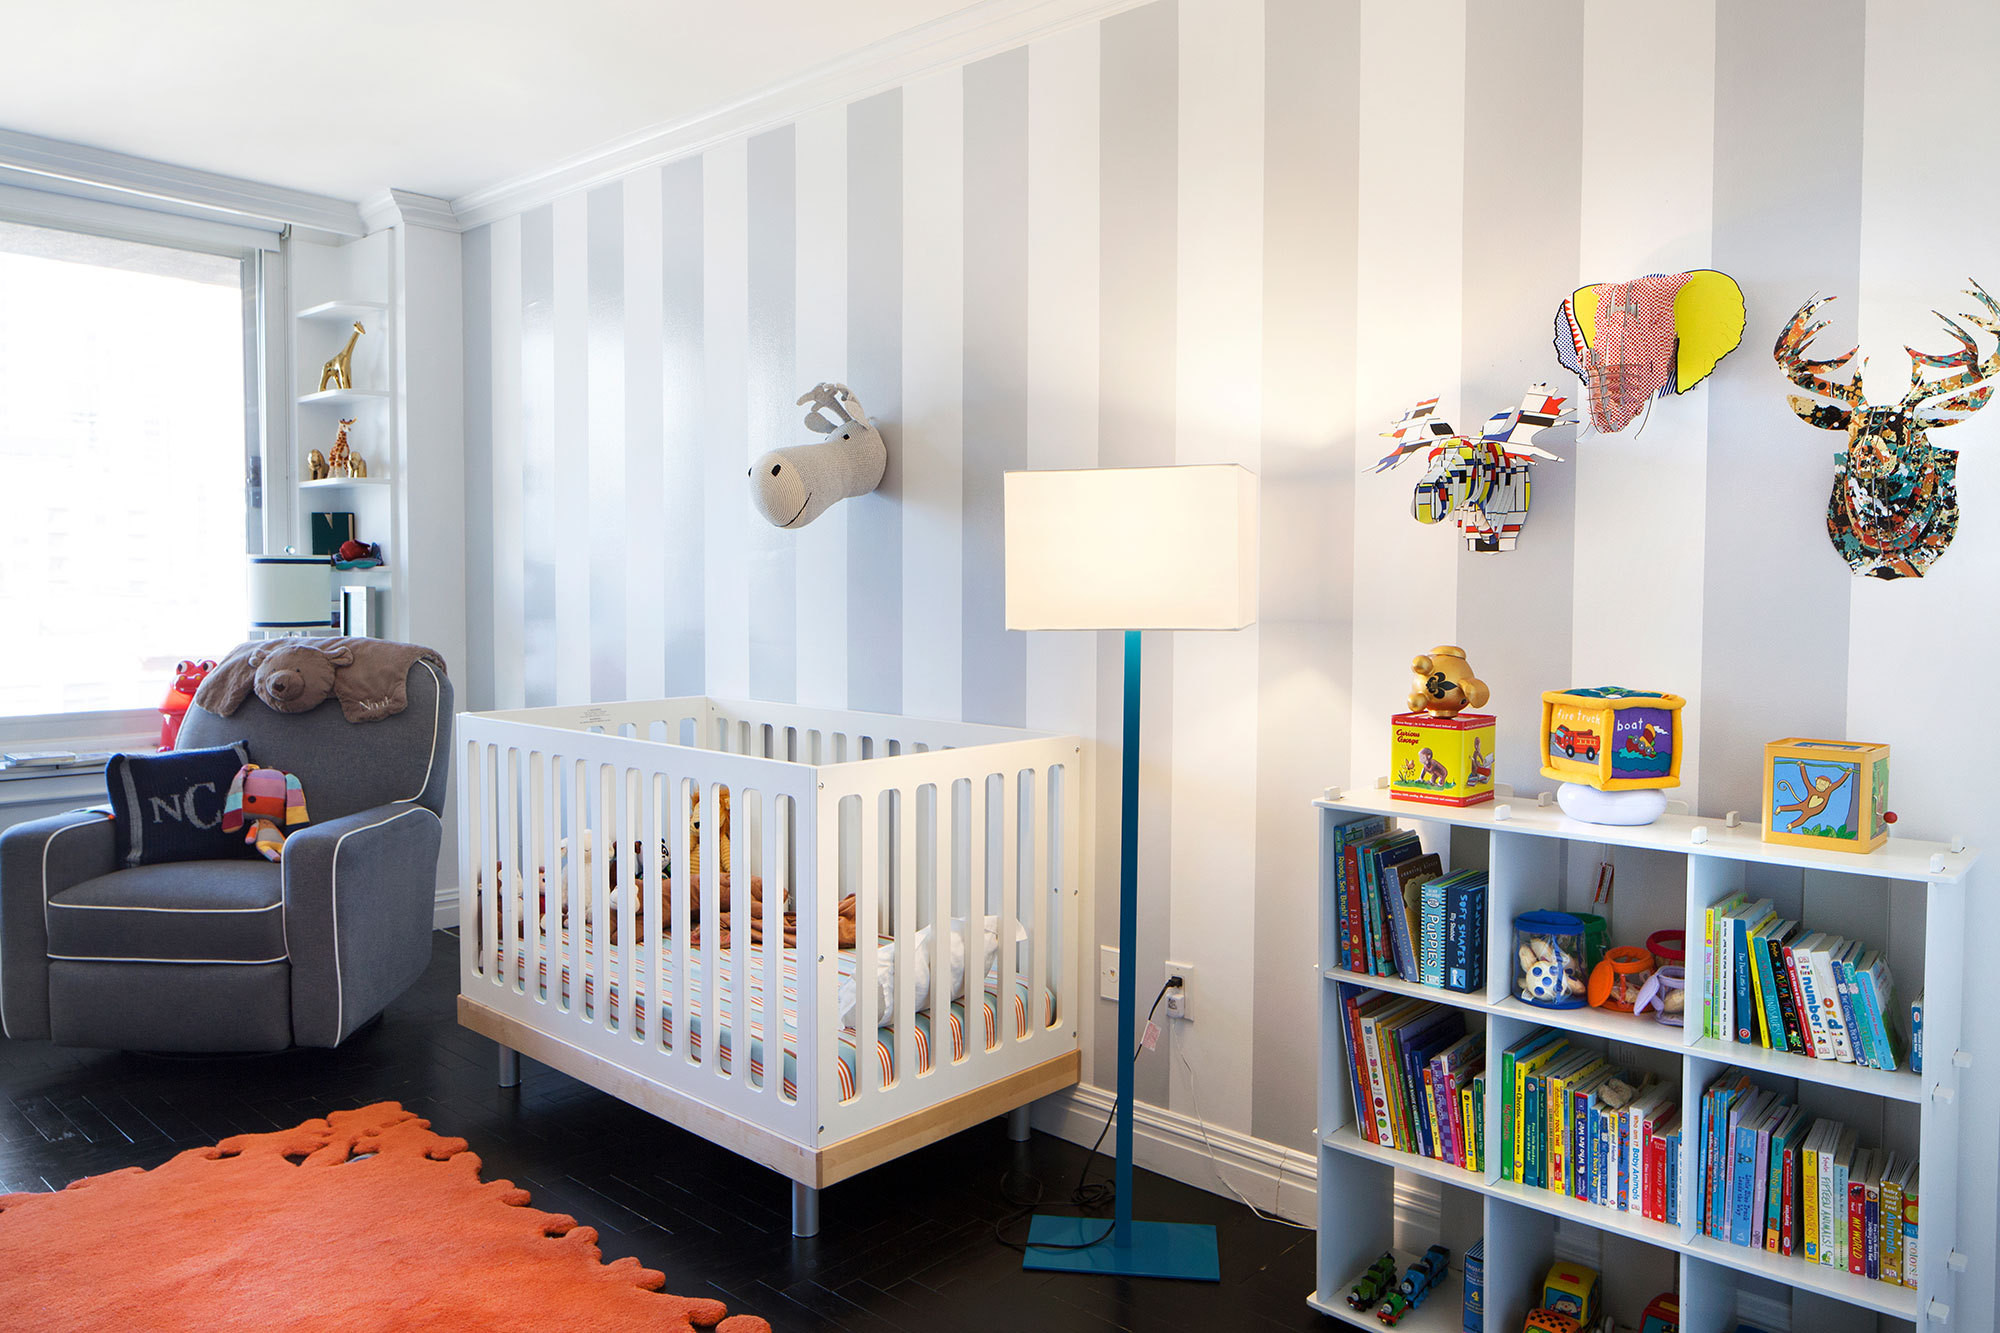 A bright NuLoom rug anchors the nursery, which features lighting and accessories that balance playfulness and sophistication.